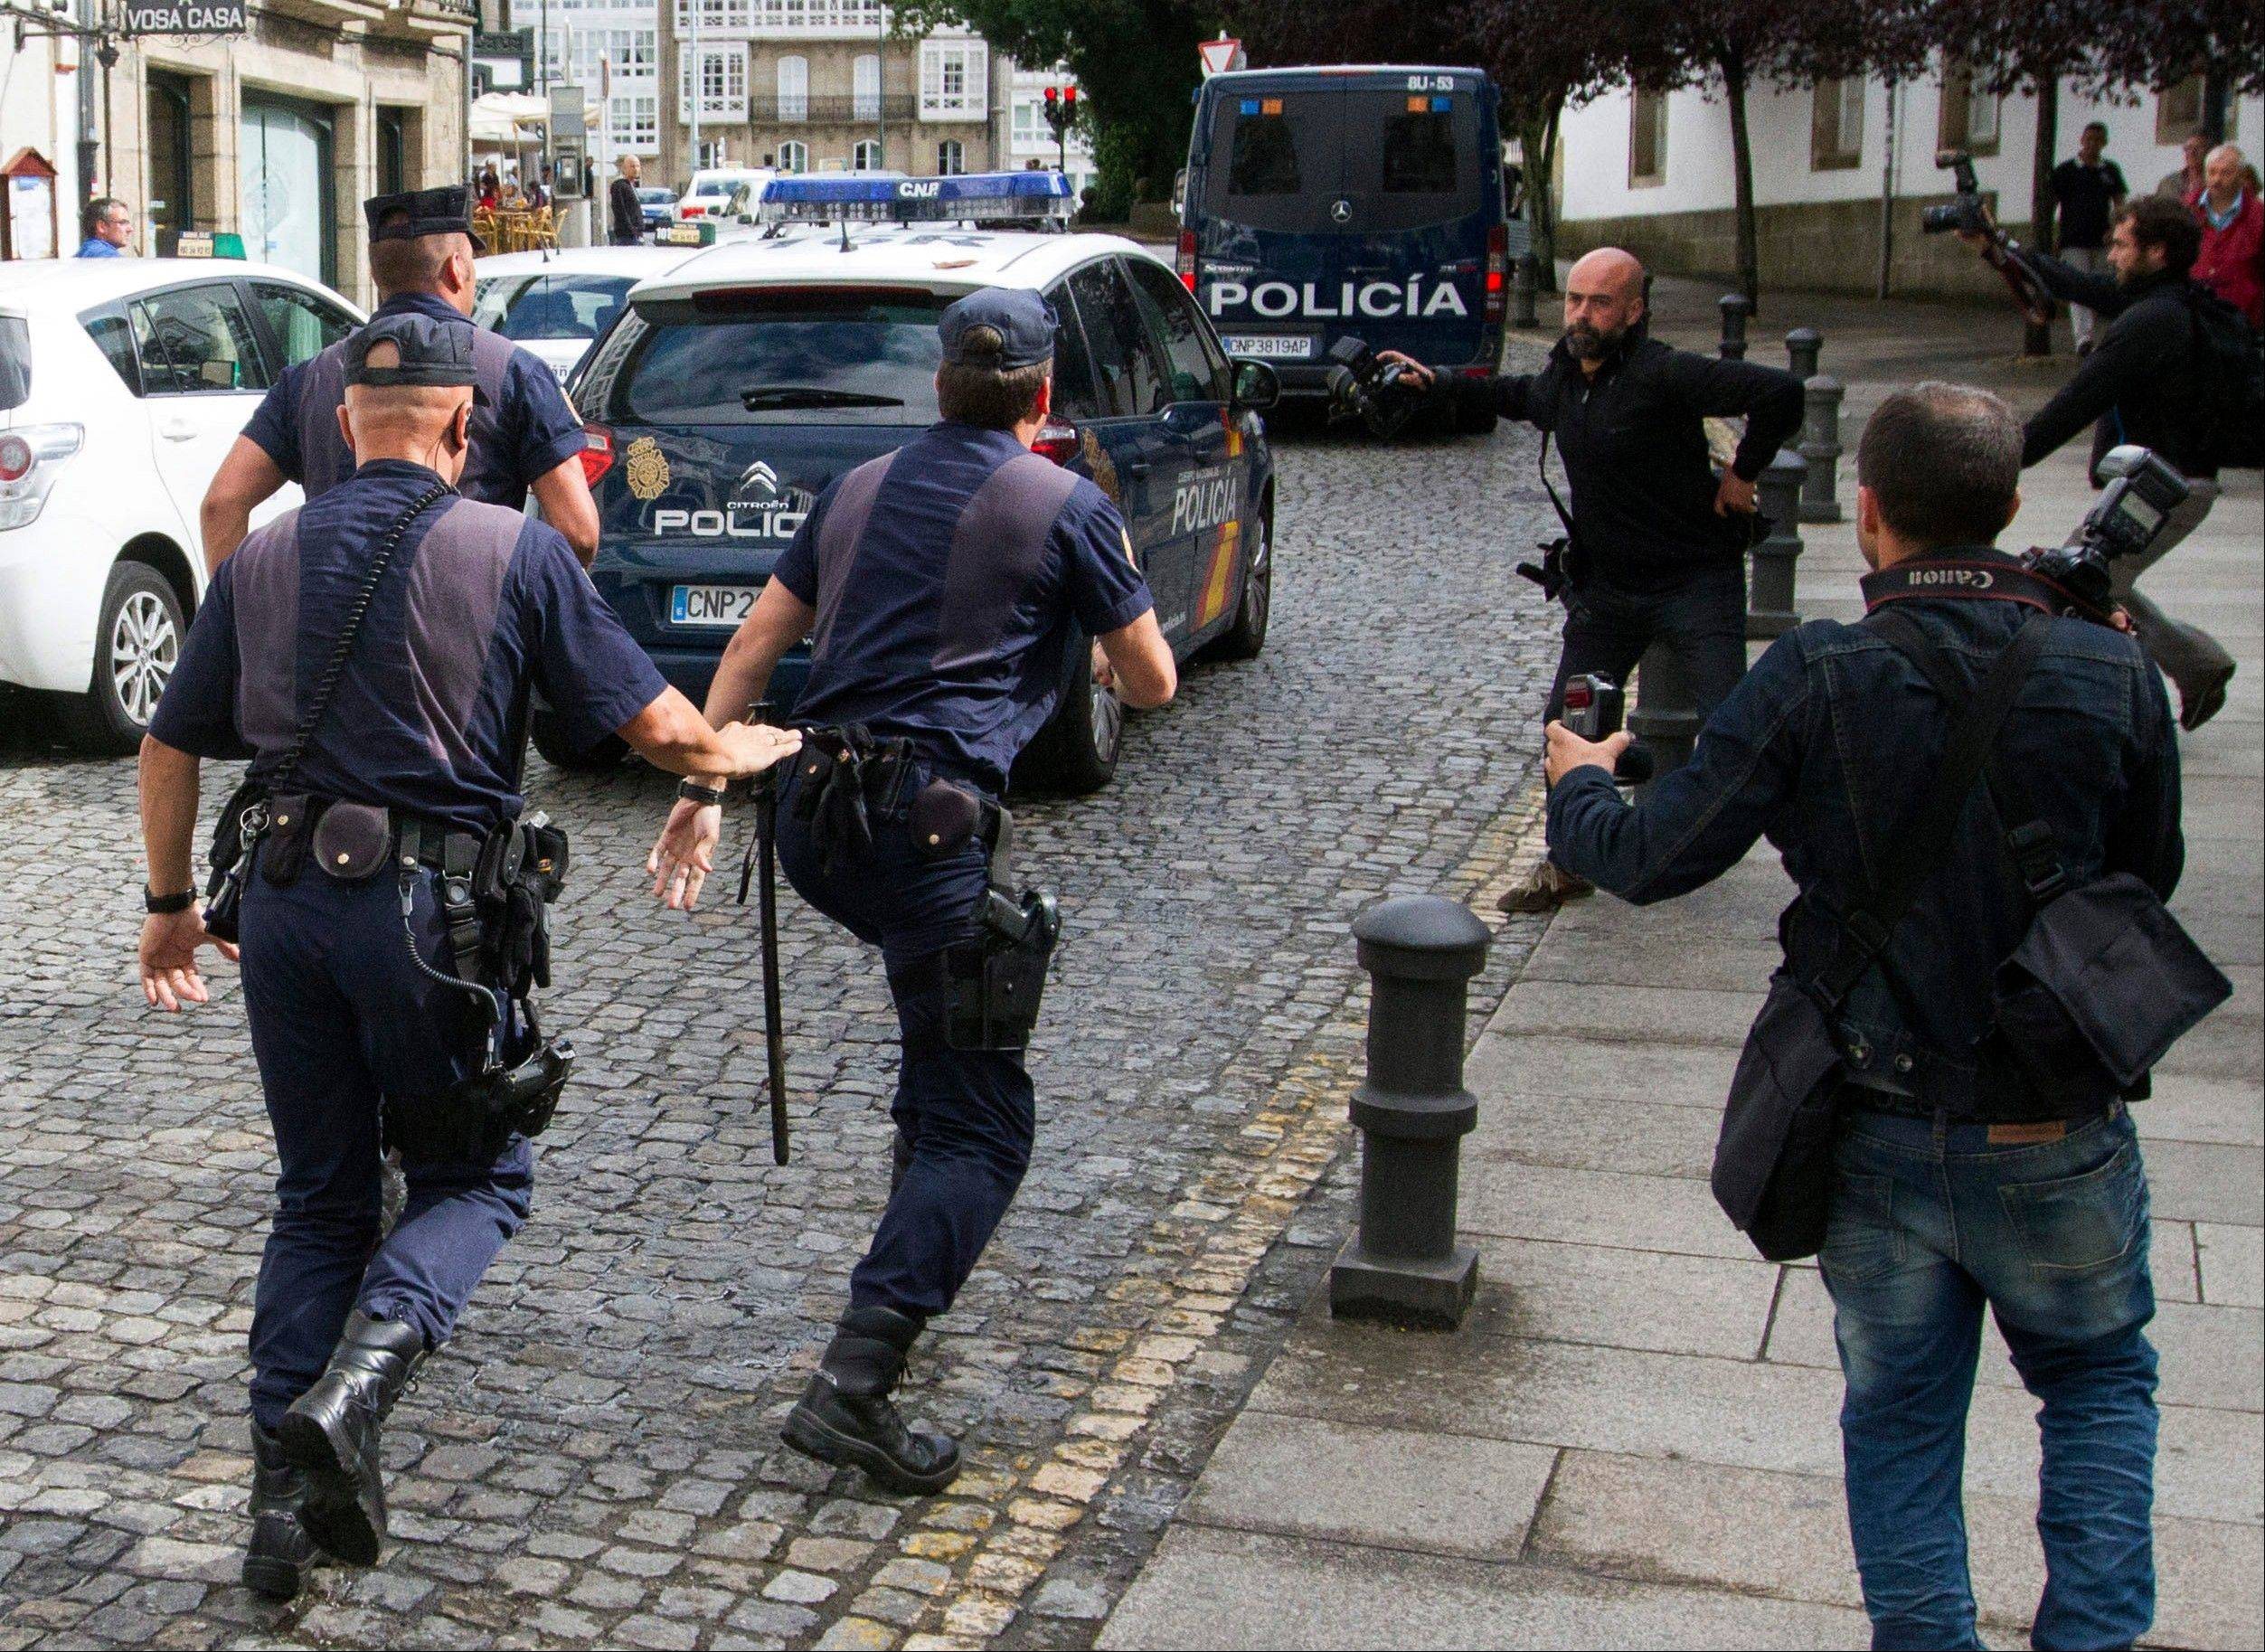 Media run after a police car carrying arrested train driver Francisco Jose Garzon Amo, unseen, to testify in court in Santiago de Compostela, Spain, Sunday. Amo was provisionally charged Tuesday with multiple counts of negligent homicide.